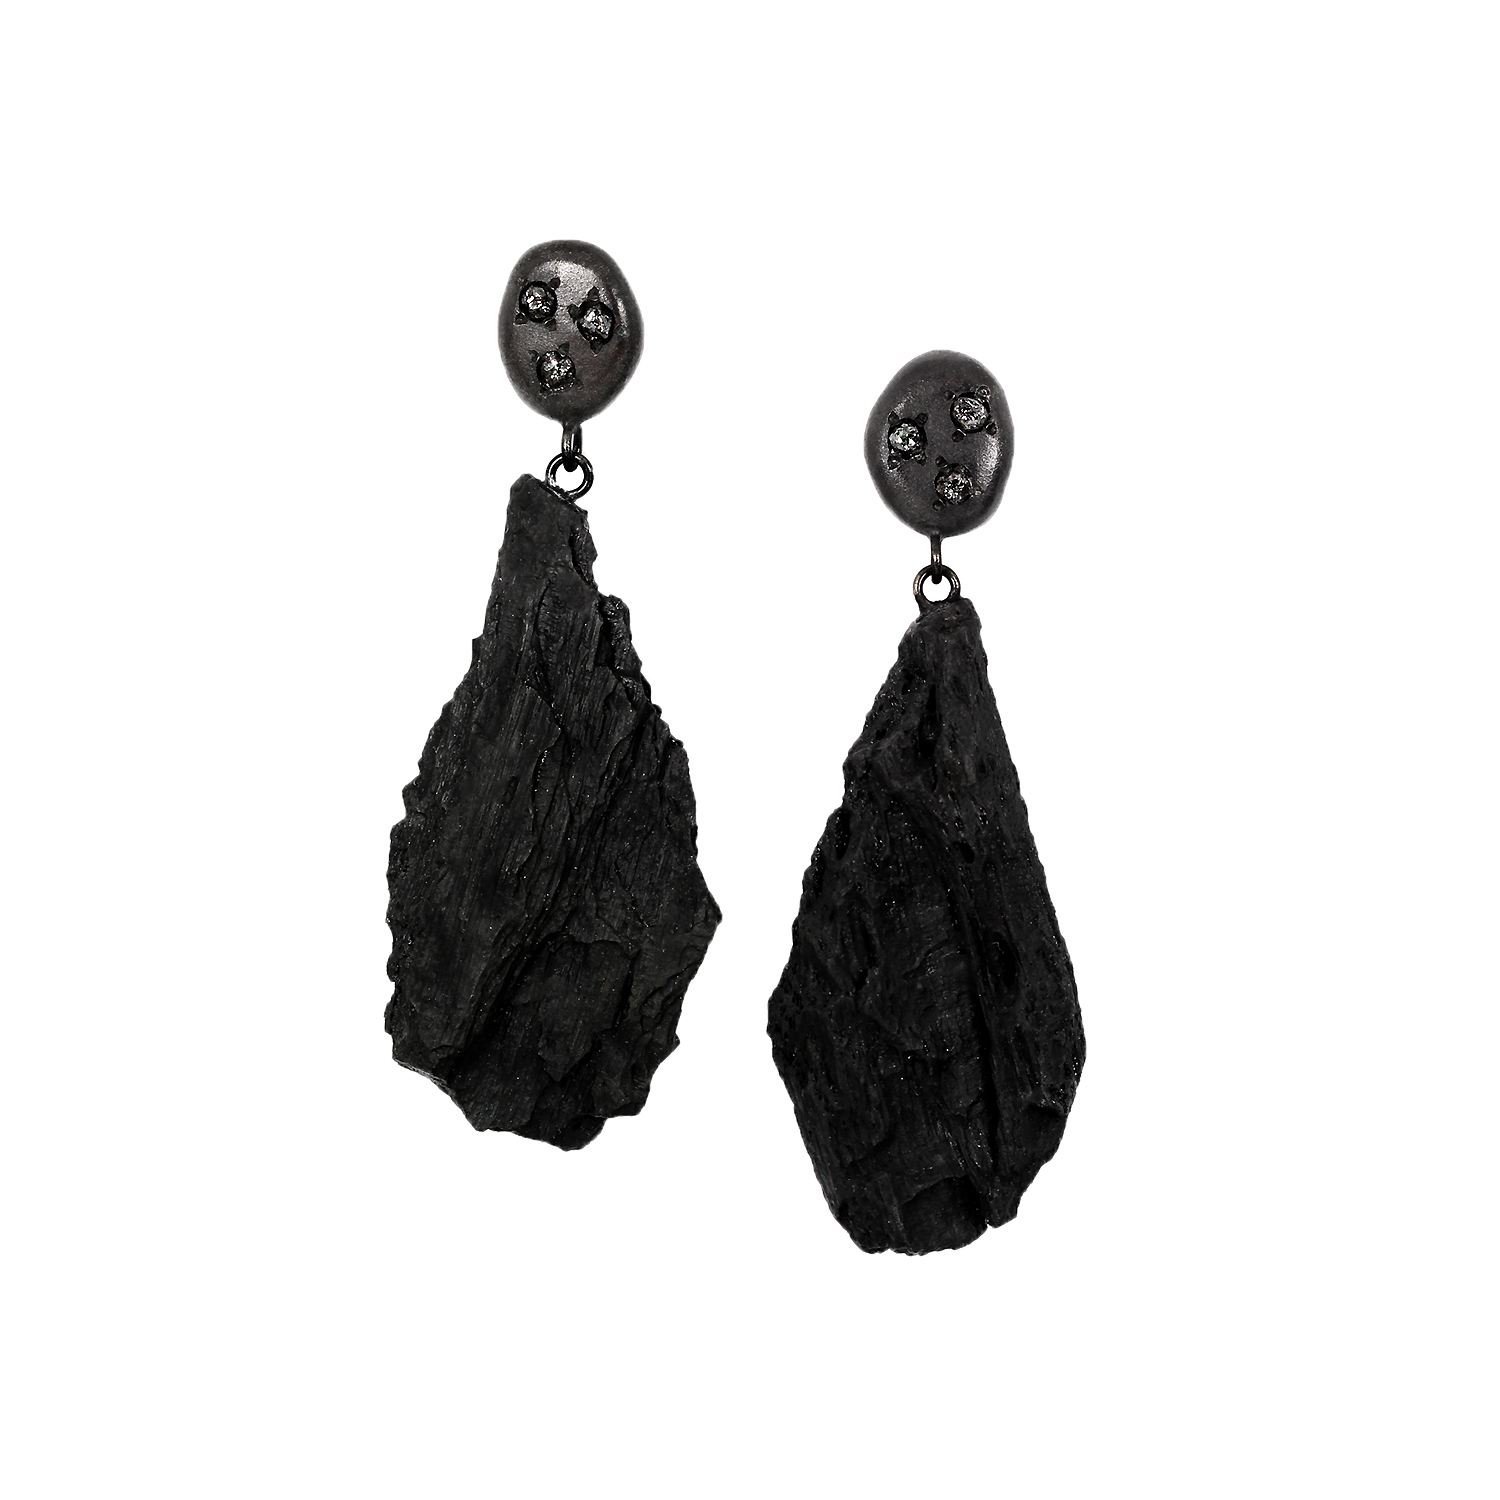 ENVY single edition earrings #2